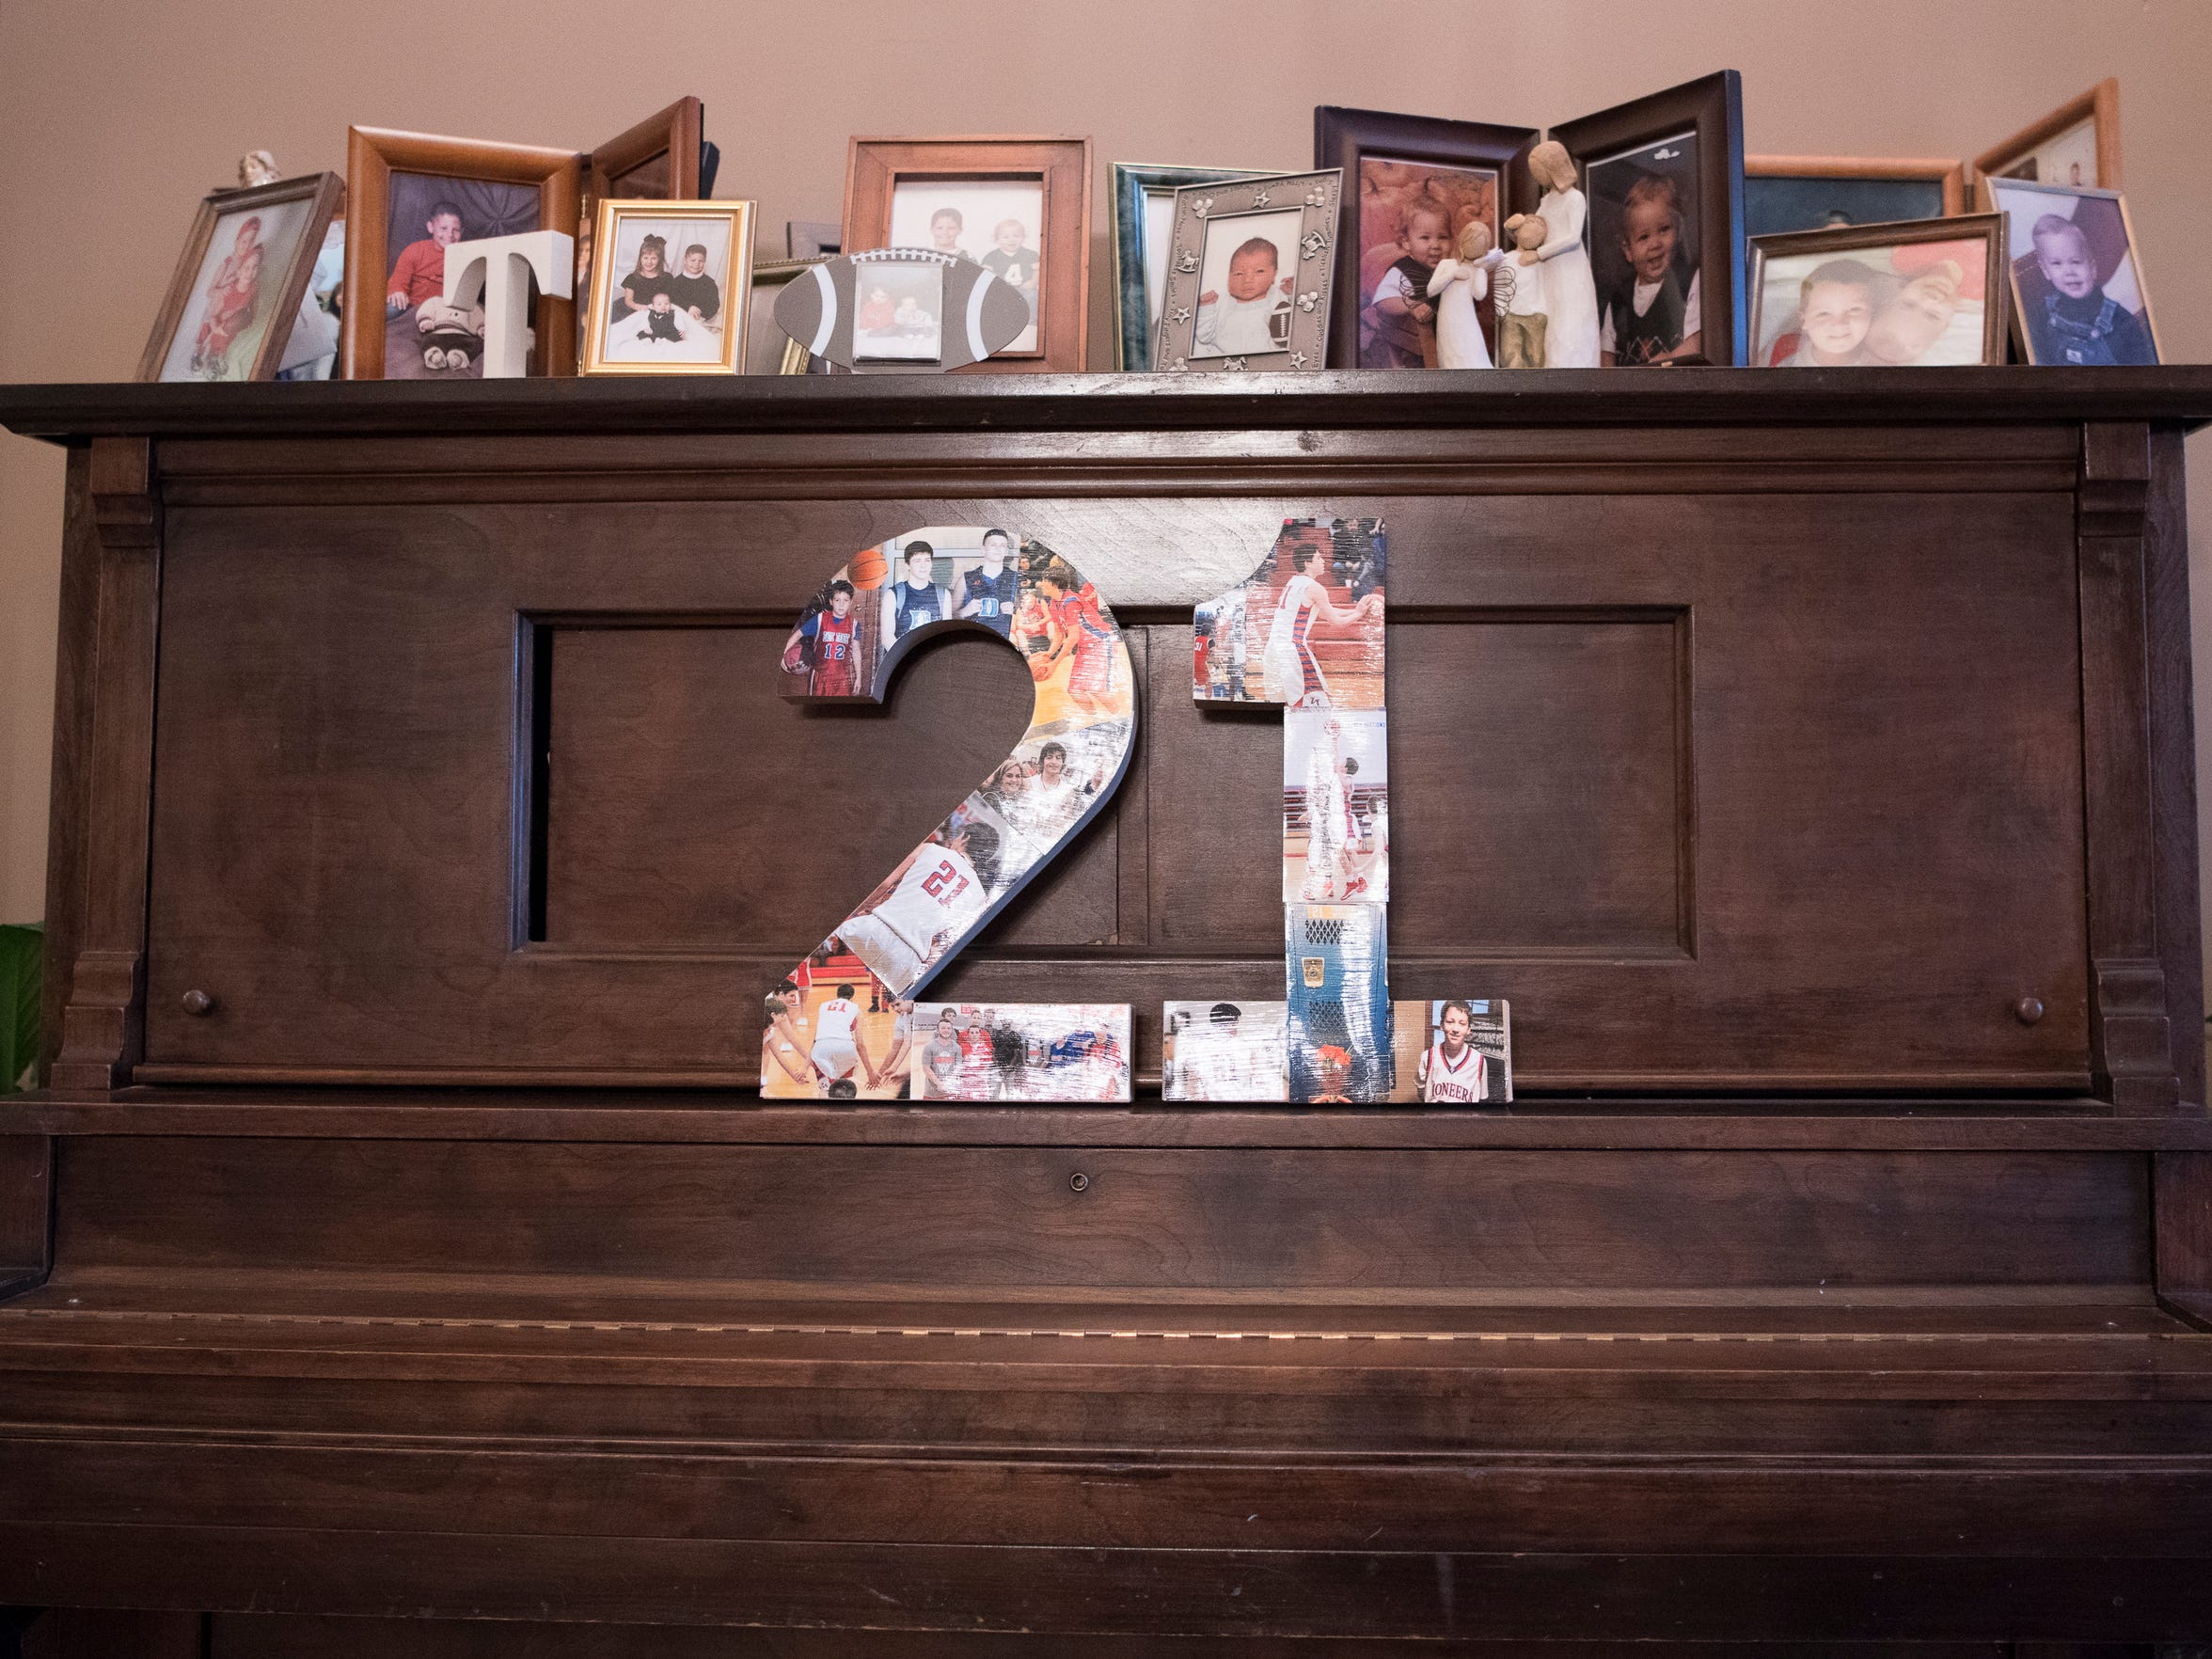 The Miller family keeps Tristan's memory alive through photos and other mementos in their home.